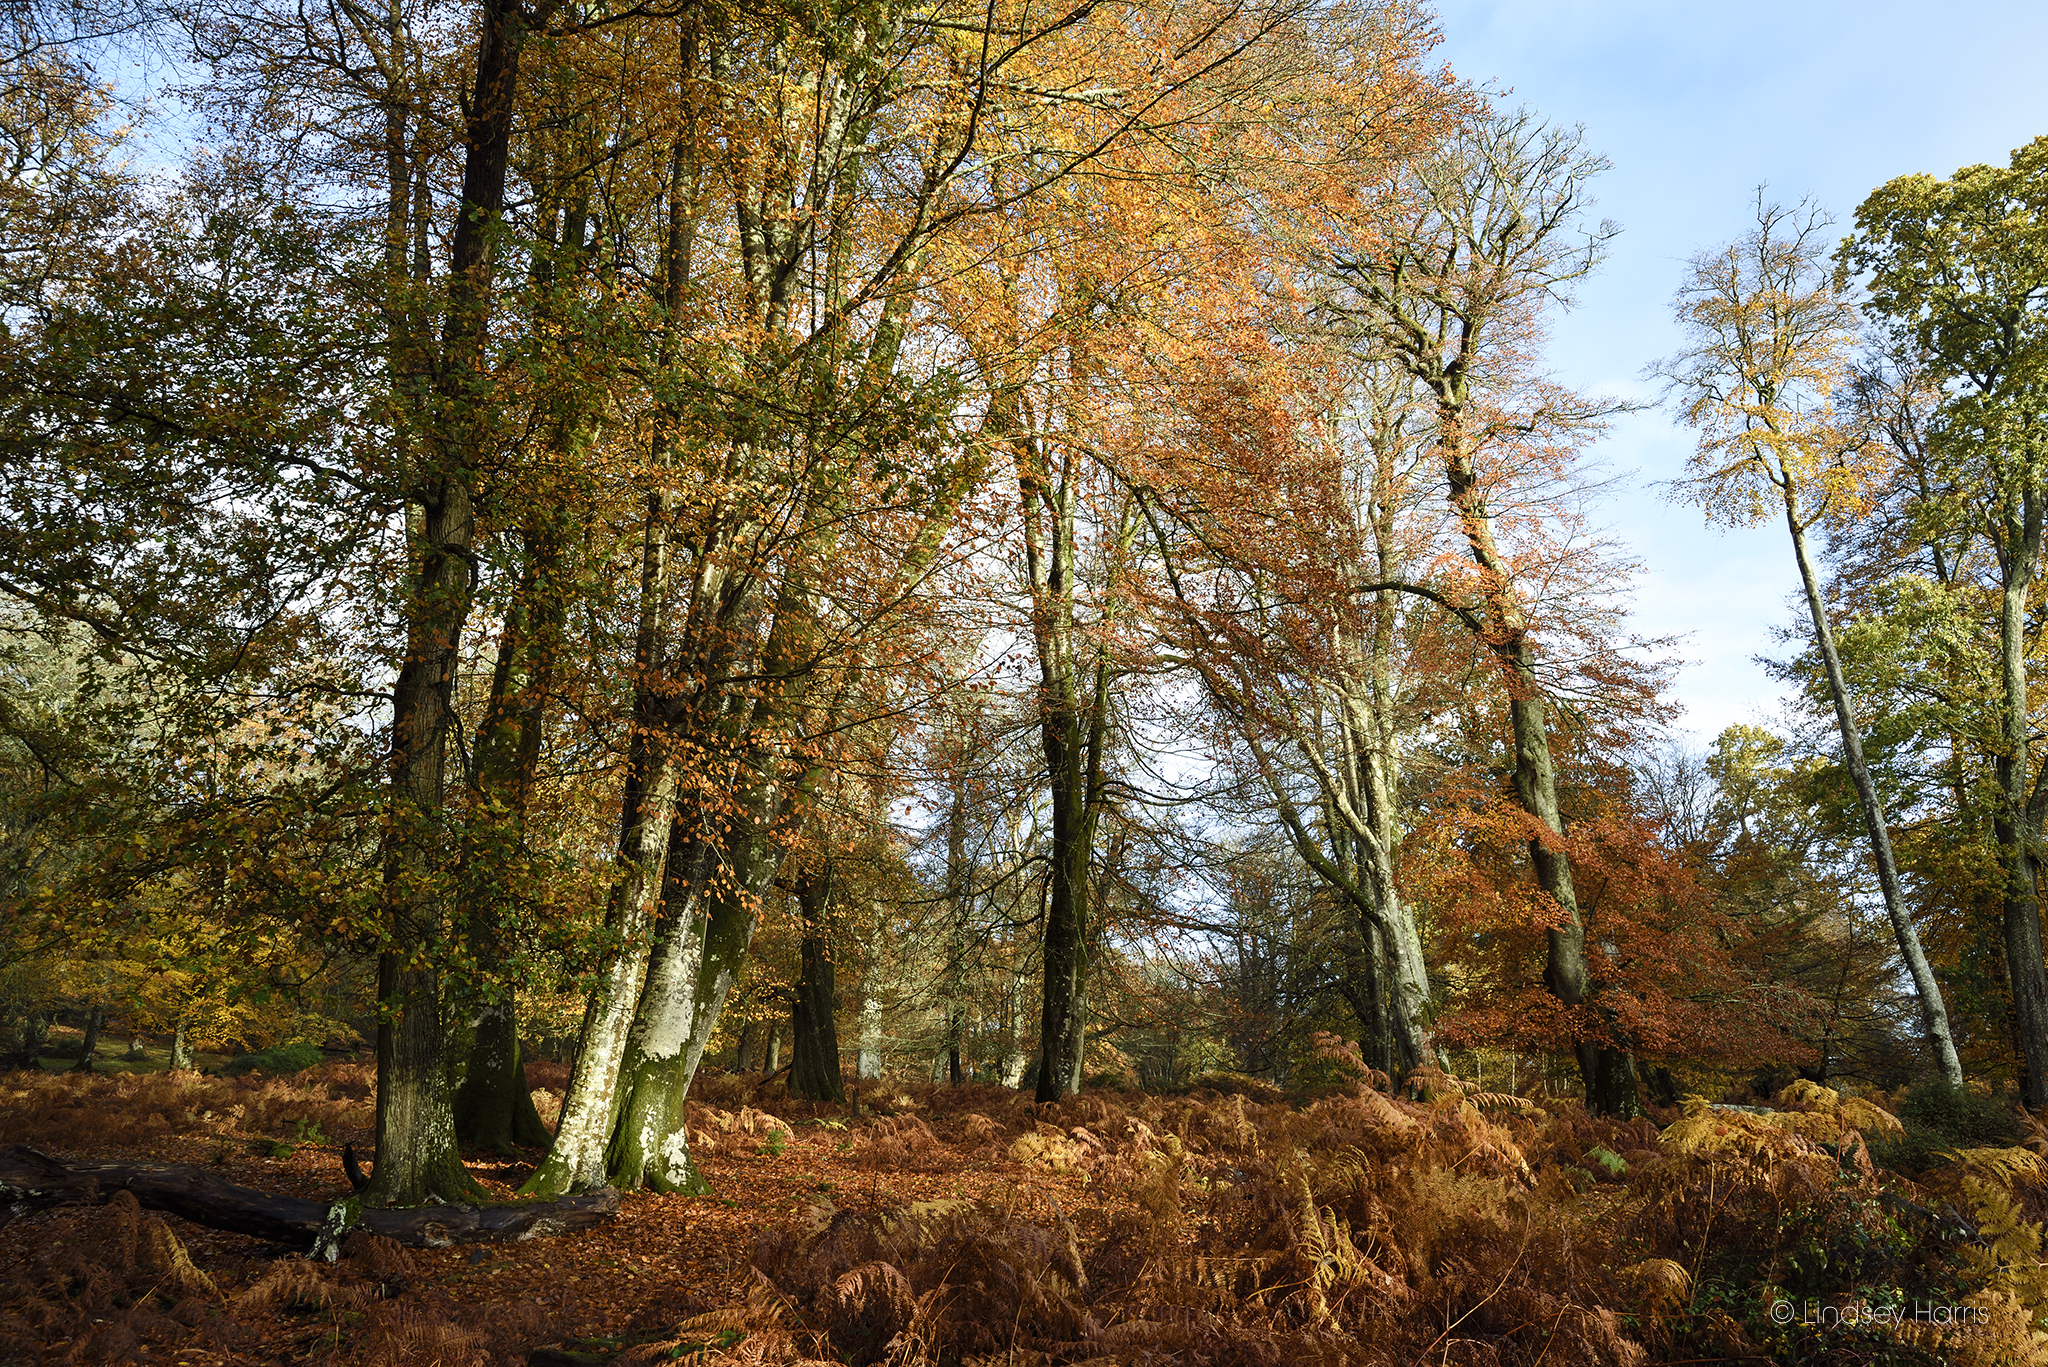 The New Forest, Autumn 2018